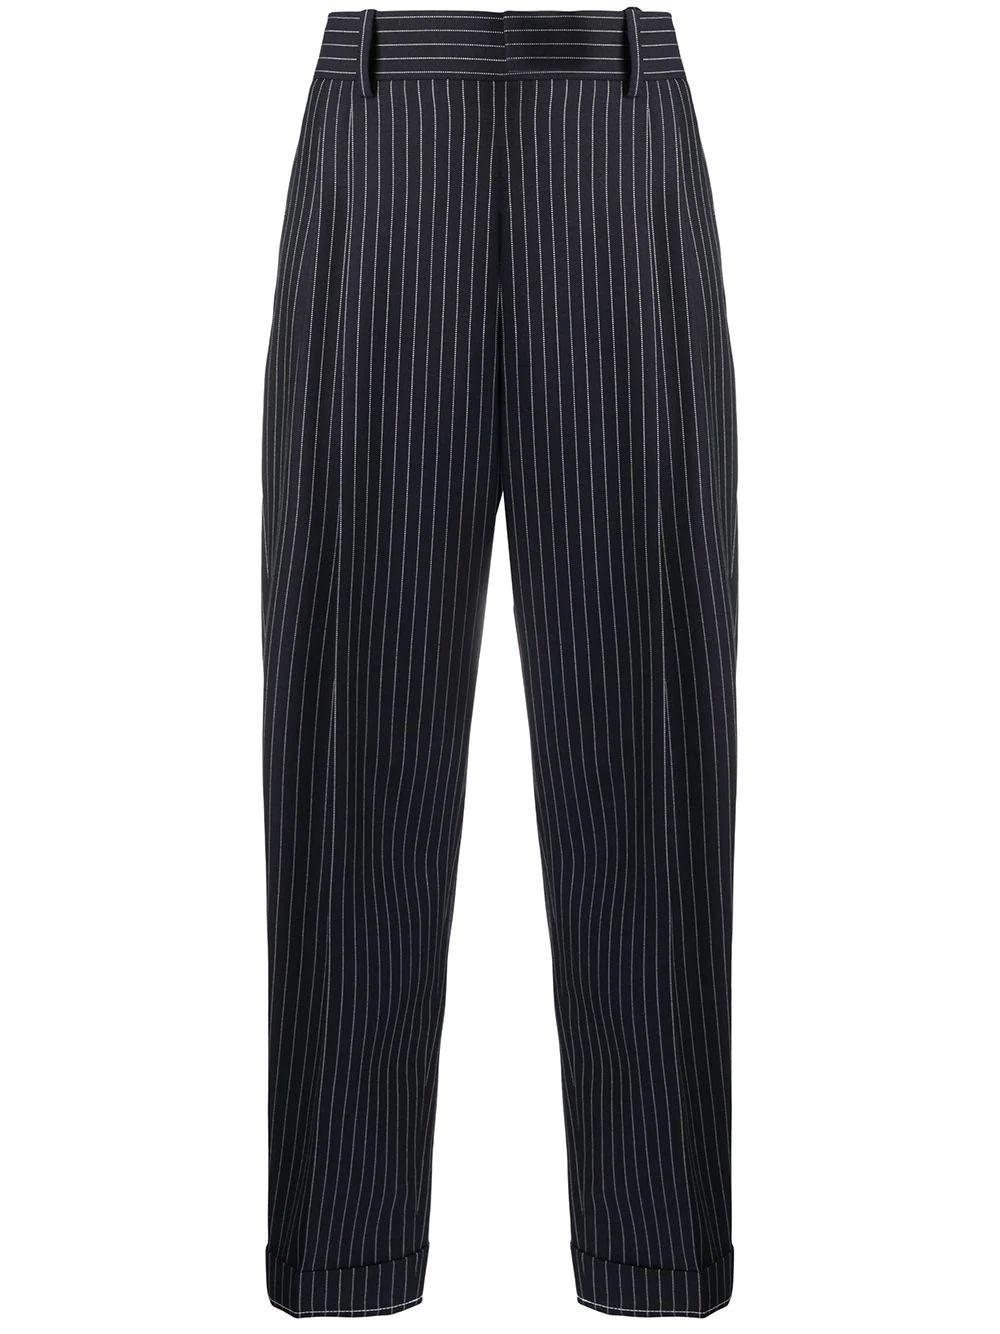 Summer Pinstripe Wool Cuffed Trouser